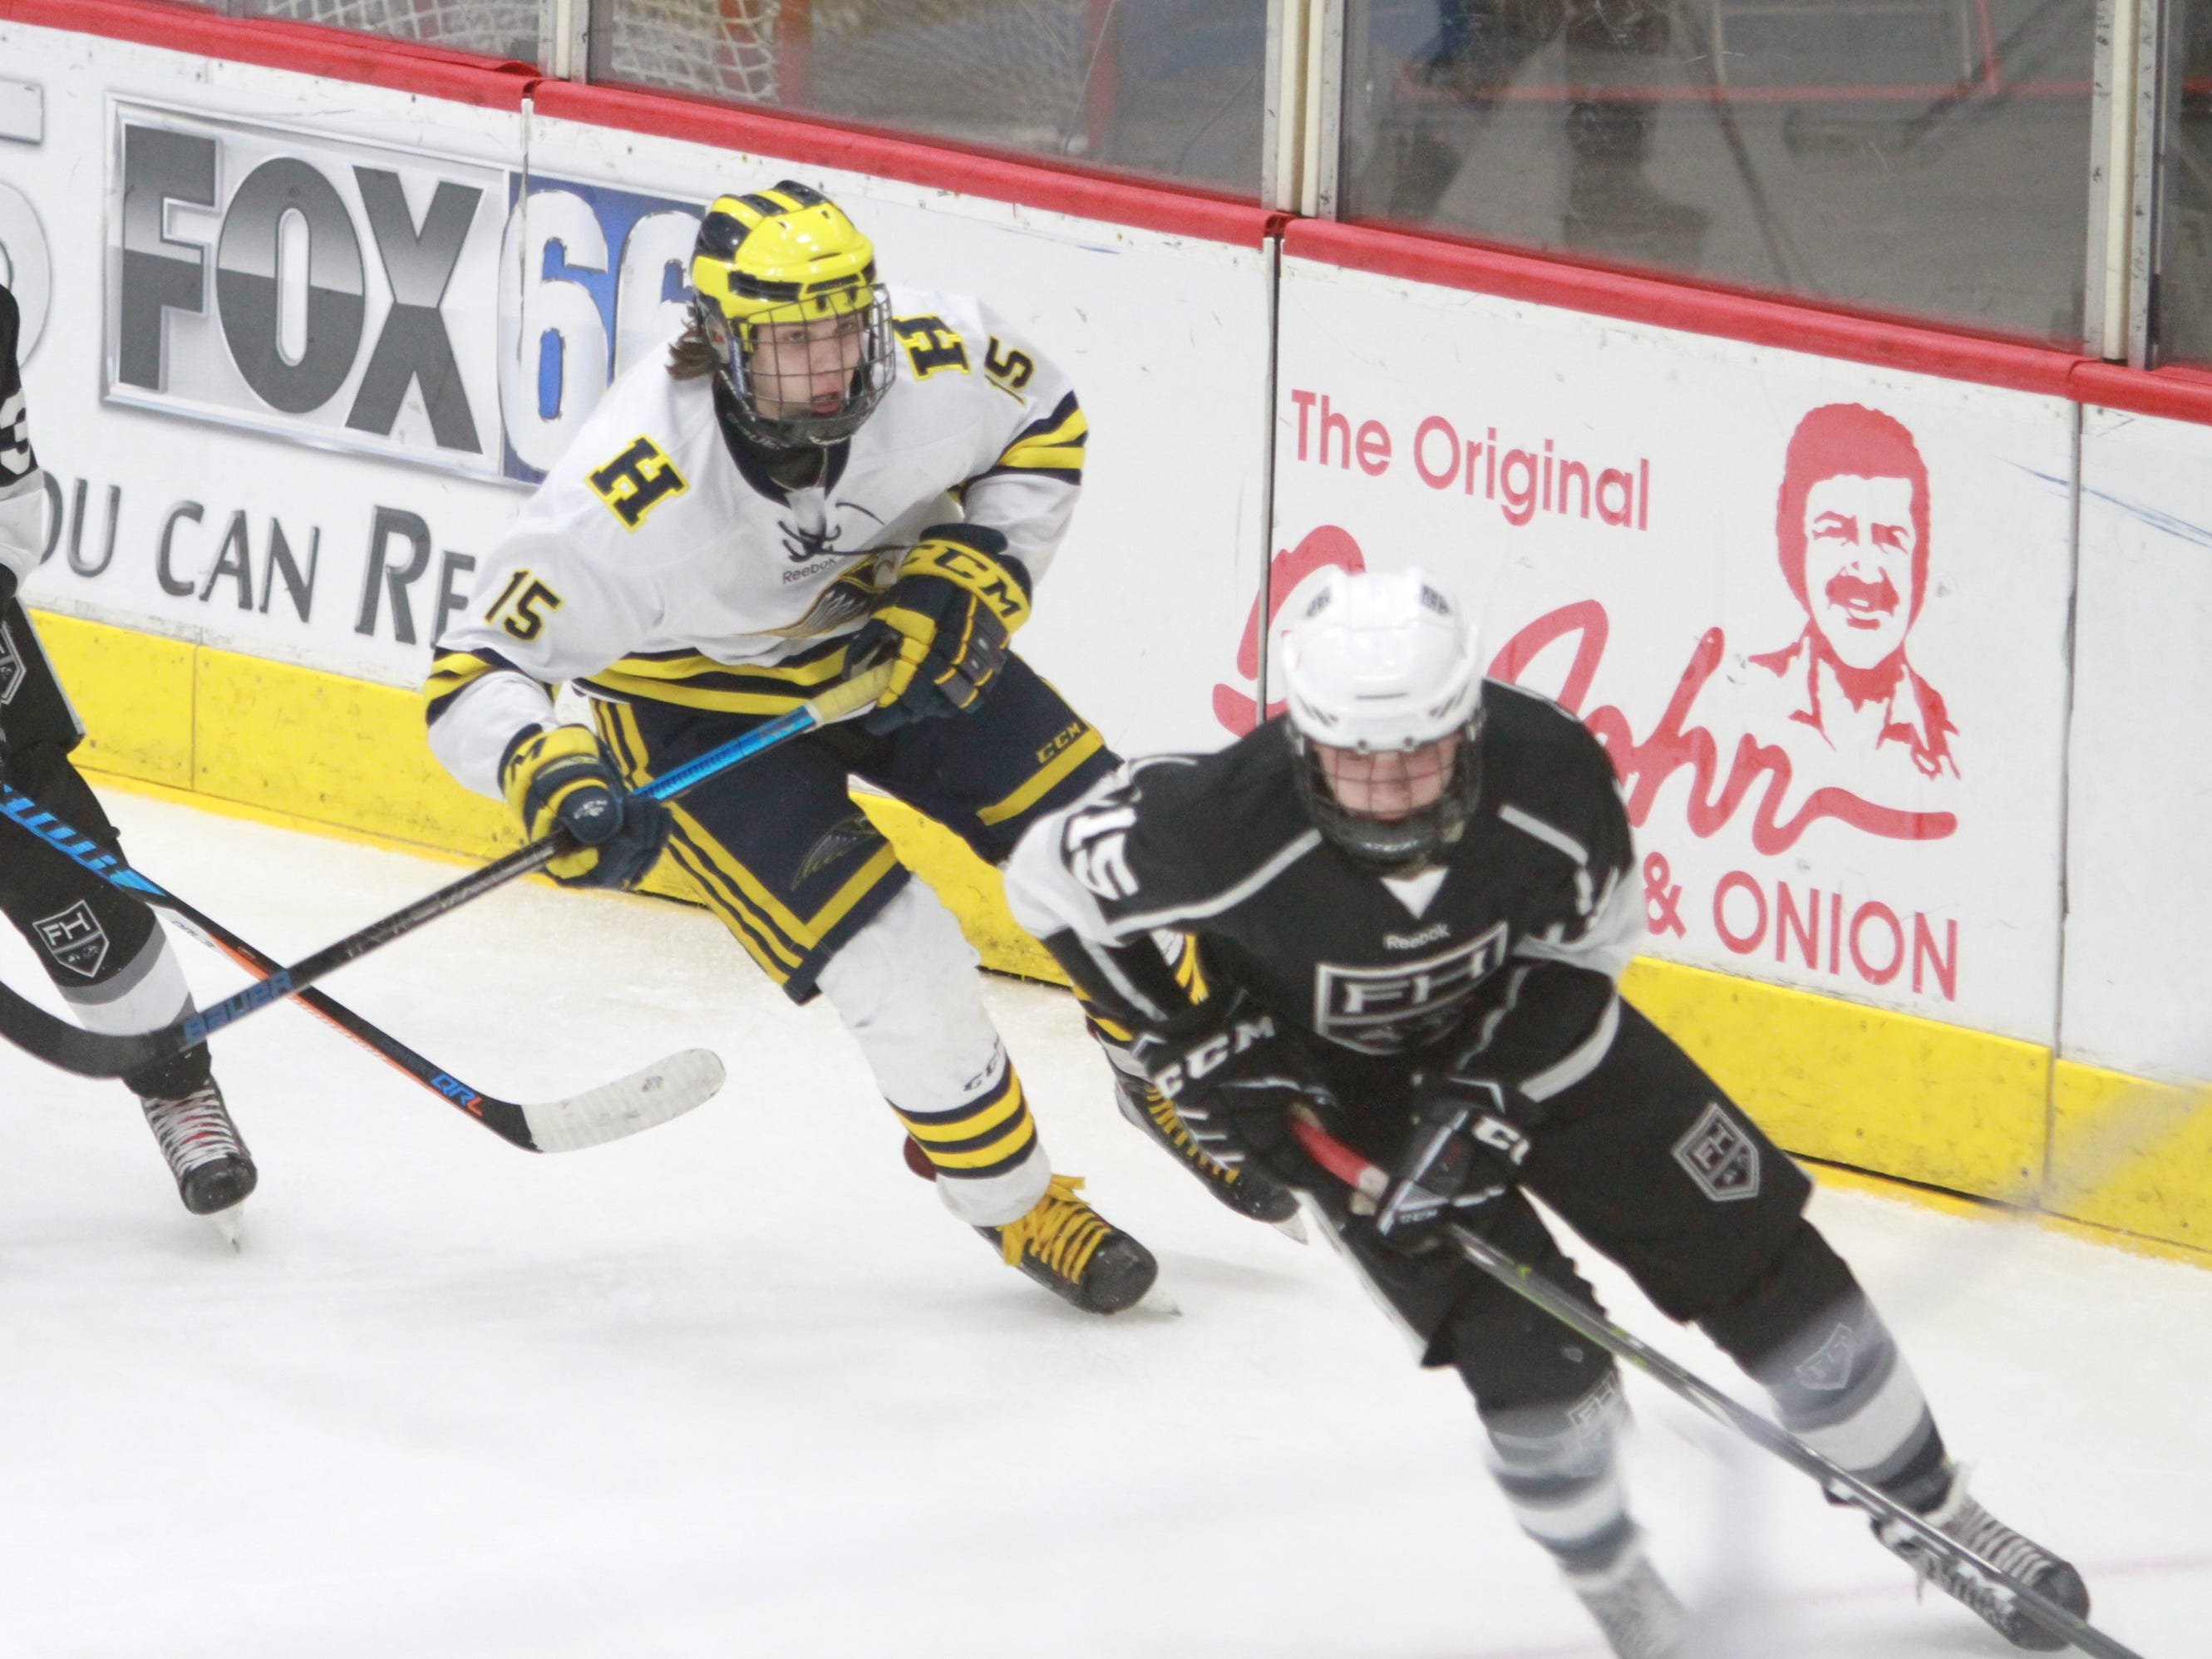 Hartland defenseman John Druskinis chases Forest Hills Eastern's Gabriel Gunneson during the Eagles' 6-0 victory in the state Division 2 hockey quarterfinals in Flint on Tuesday, March 5, 2019.